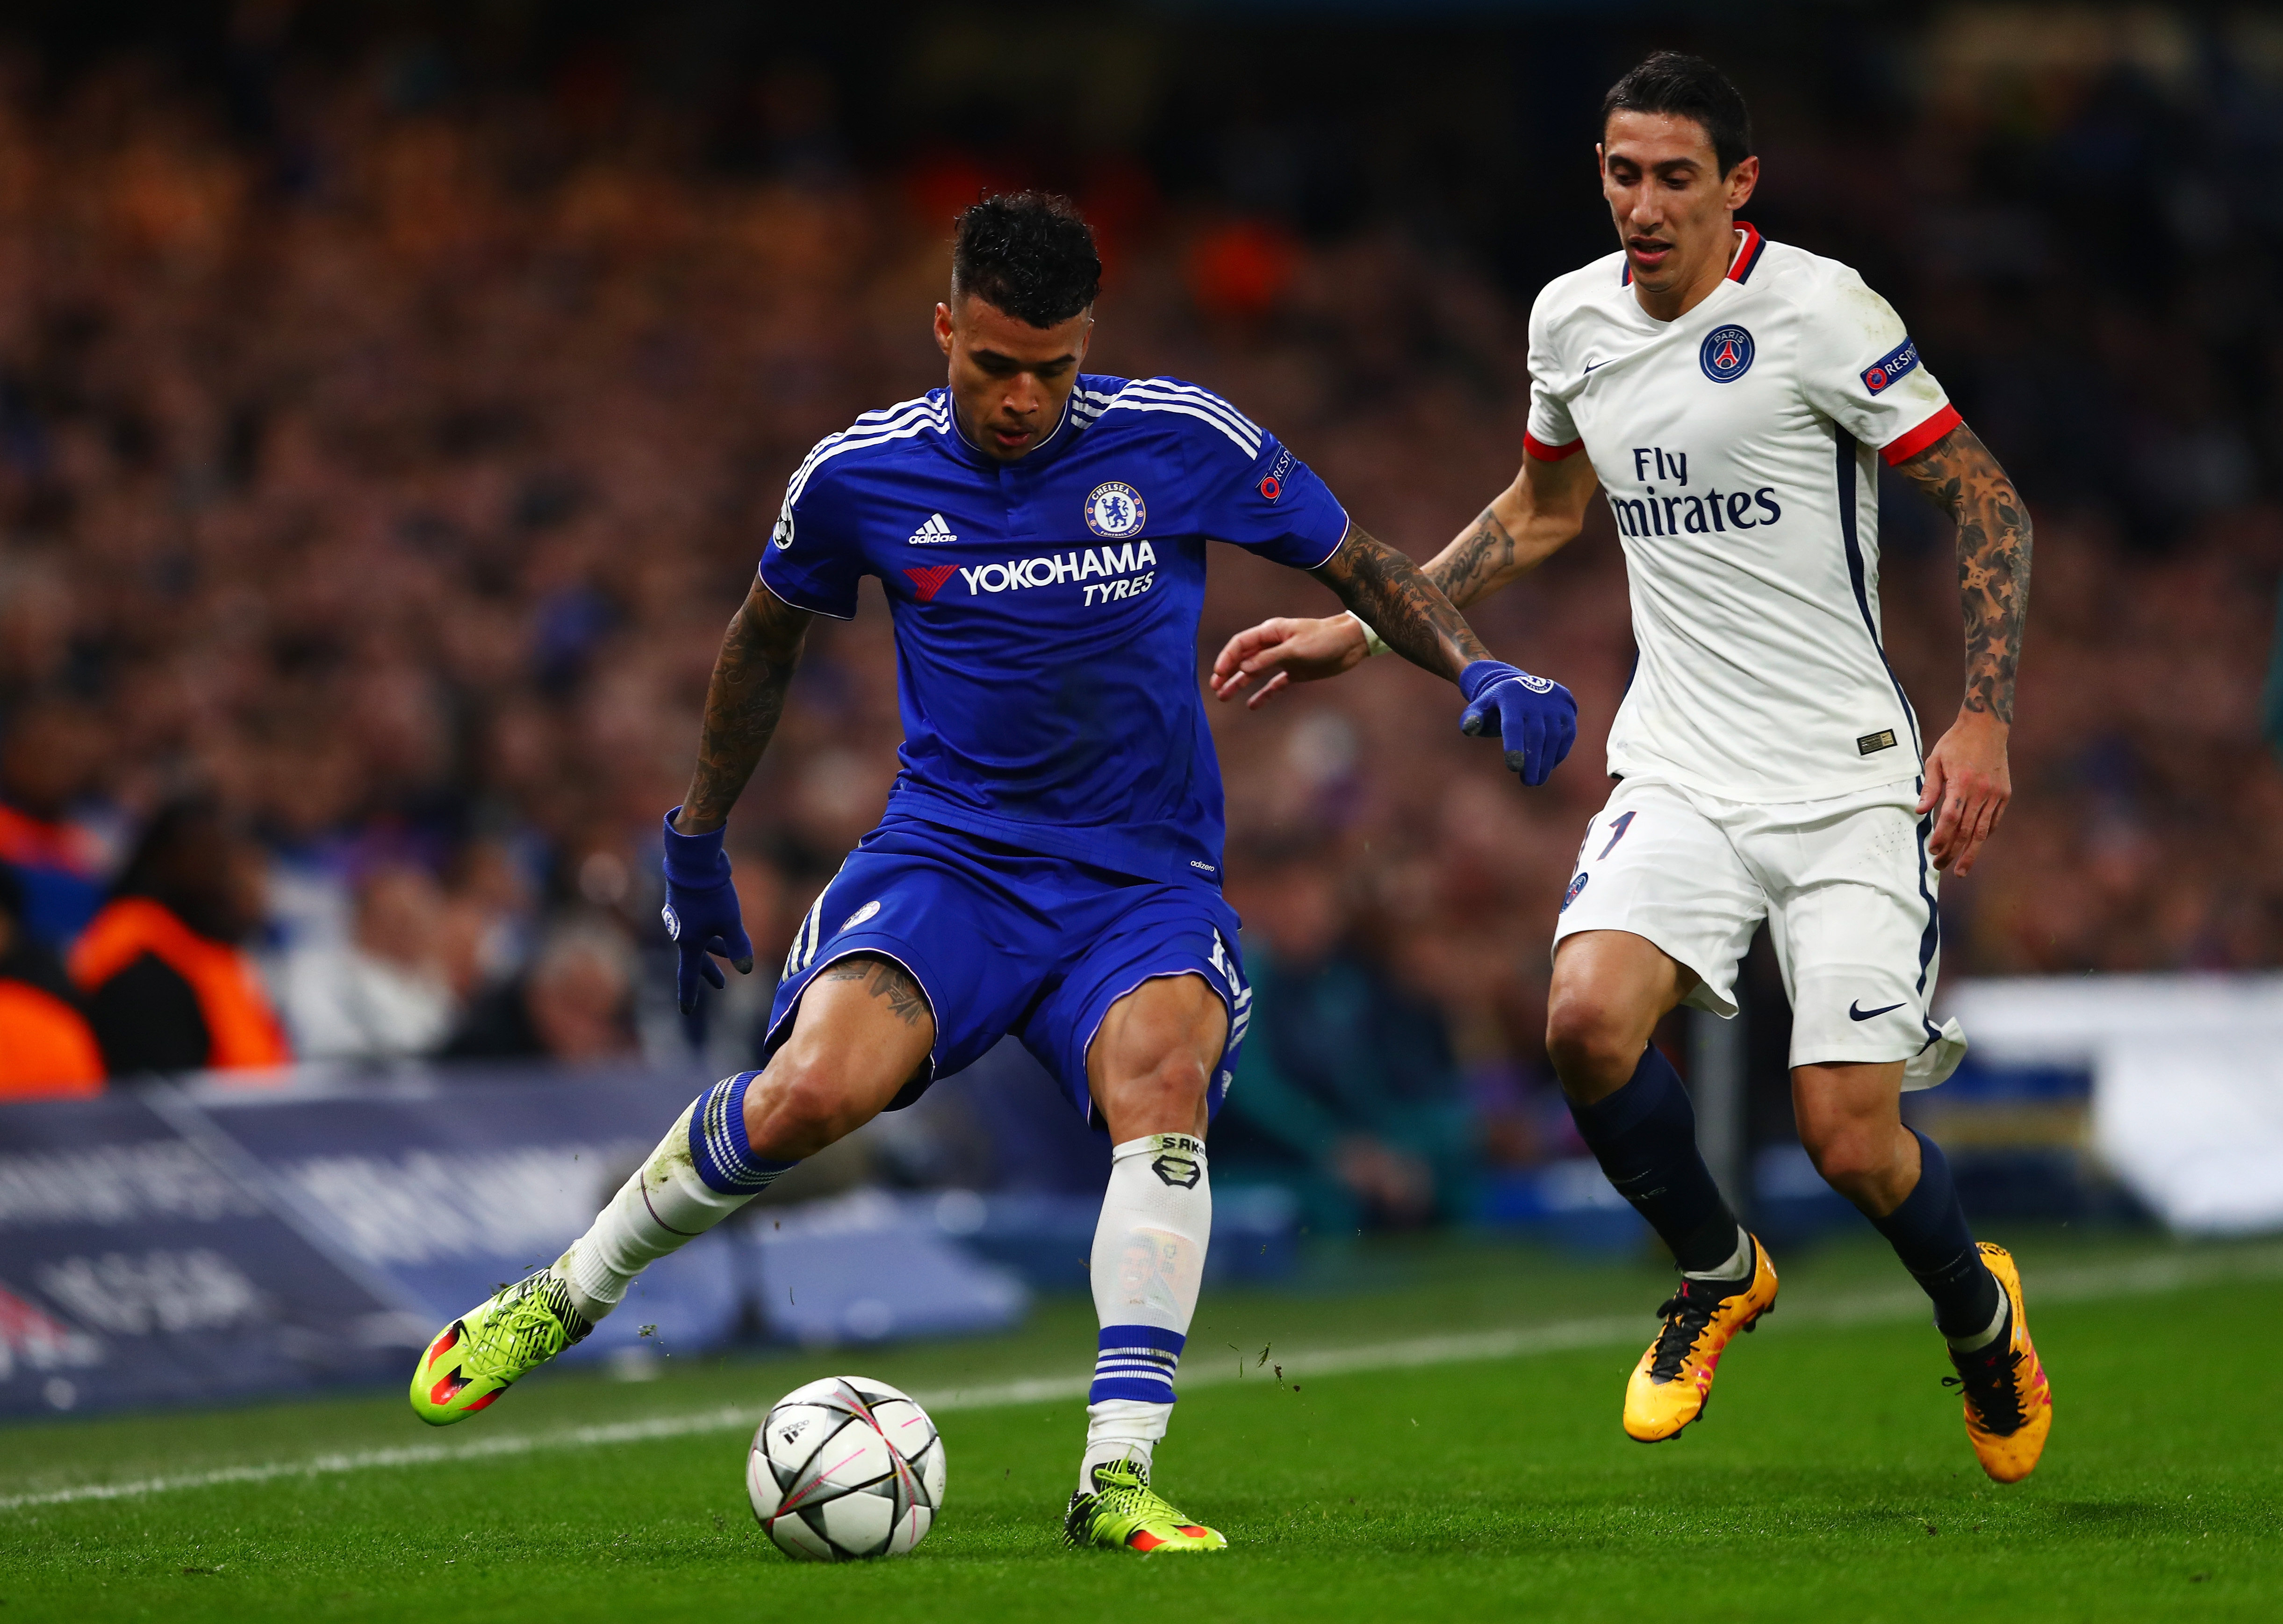 Chelsea youngsters must step up after Branislav Ivanovic injury